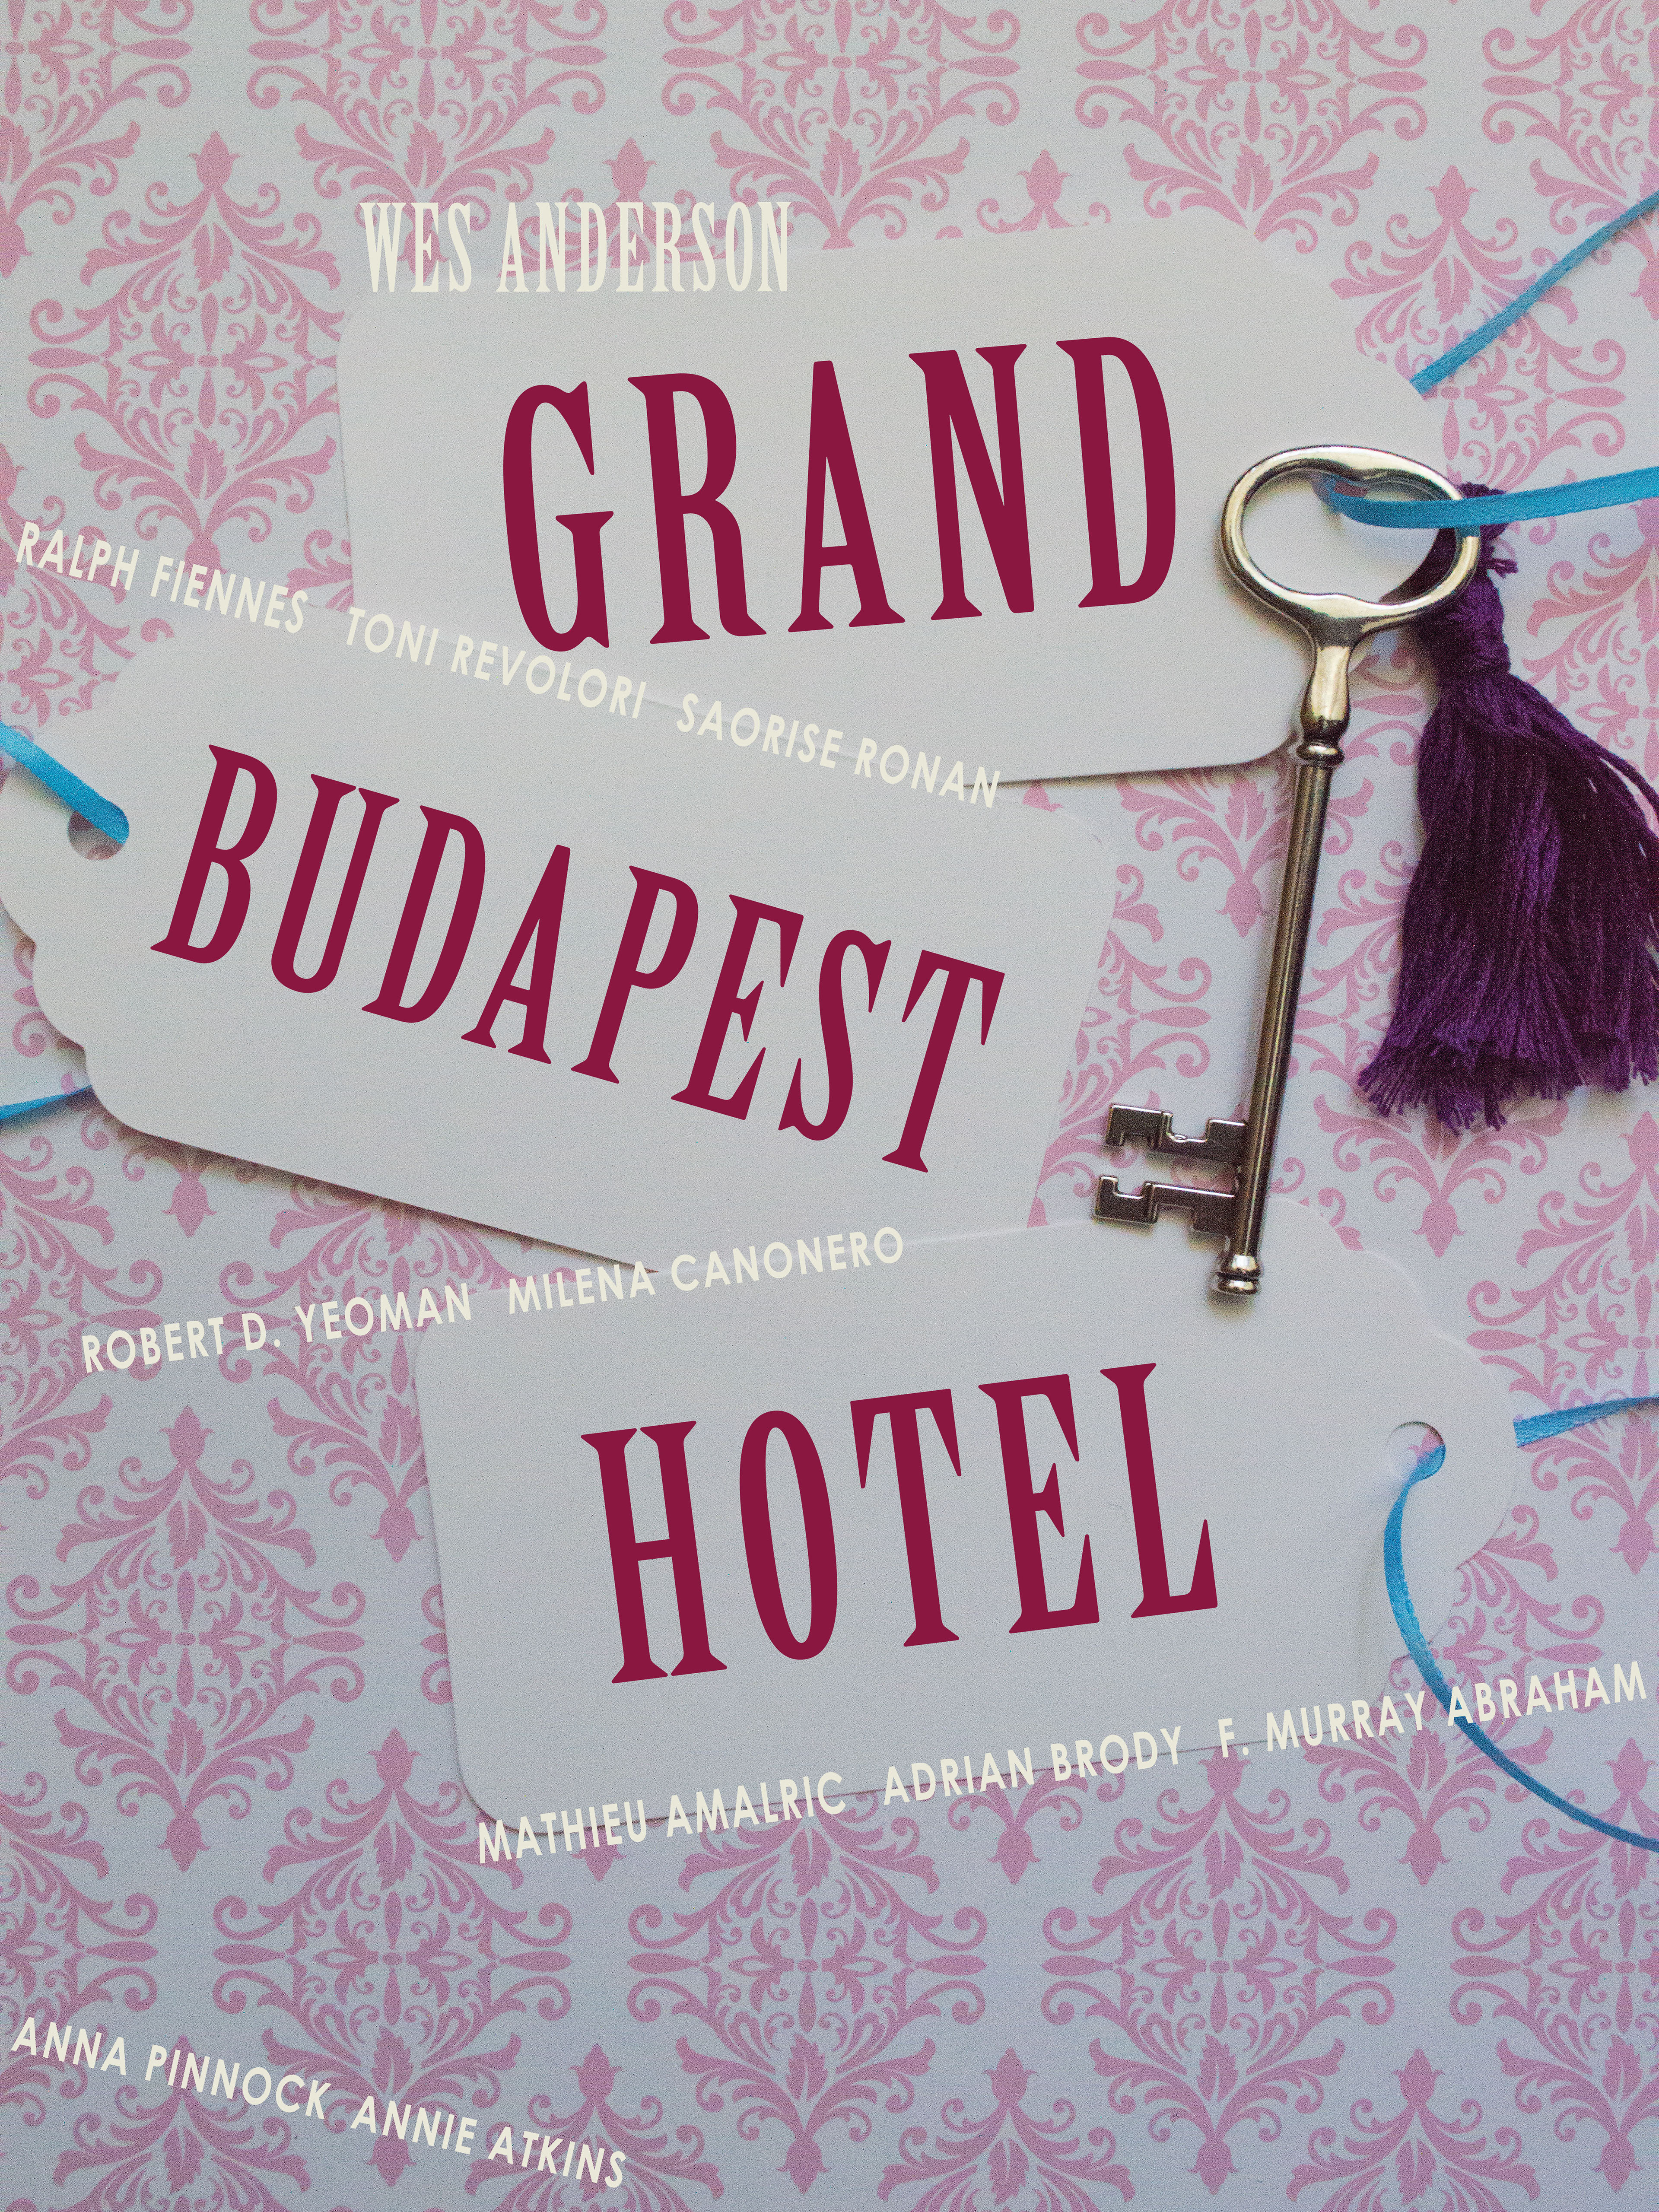 Poster design key - Project Design A Poster For The Wes Anderson Film The Grand Budapest Hotel My Poster Design Consists Of A Photograph Of A Key With A Tassel And Key Cards